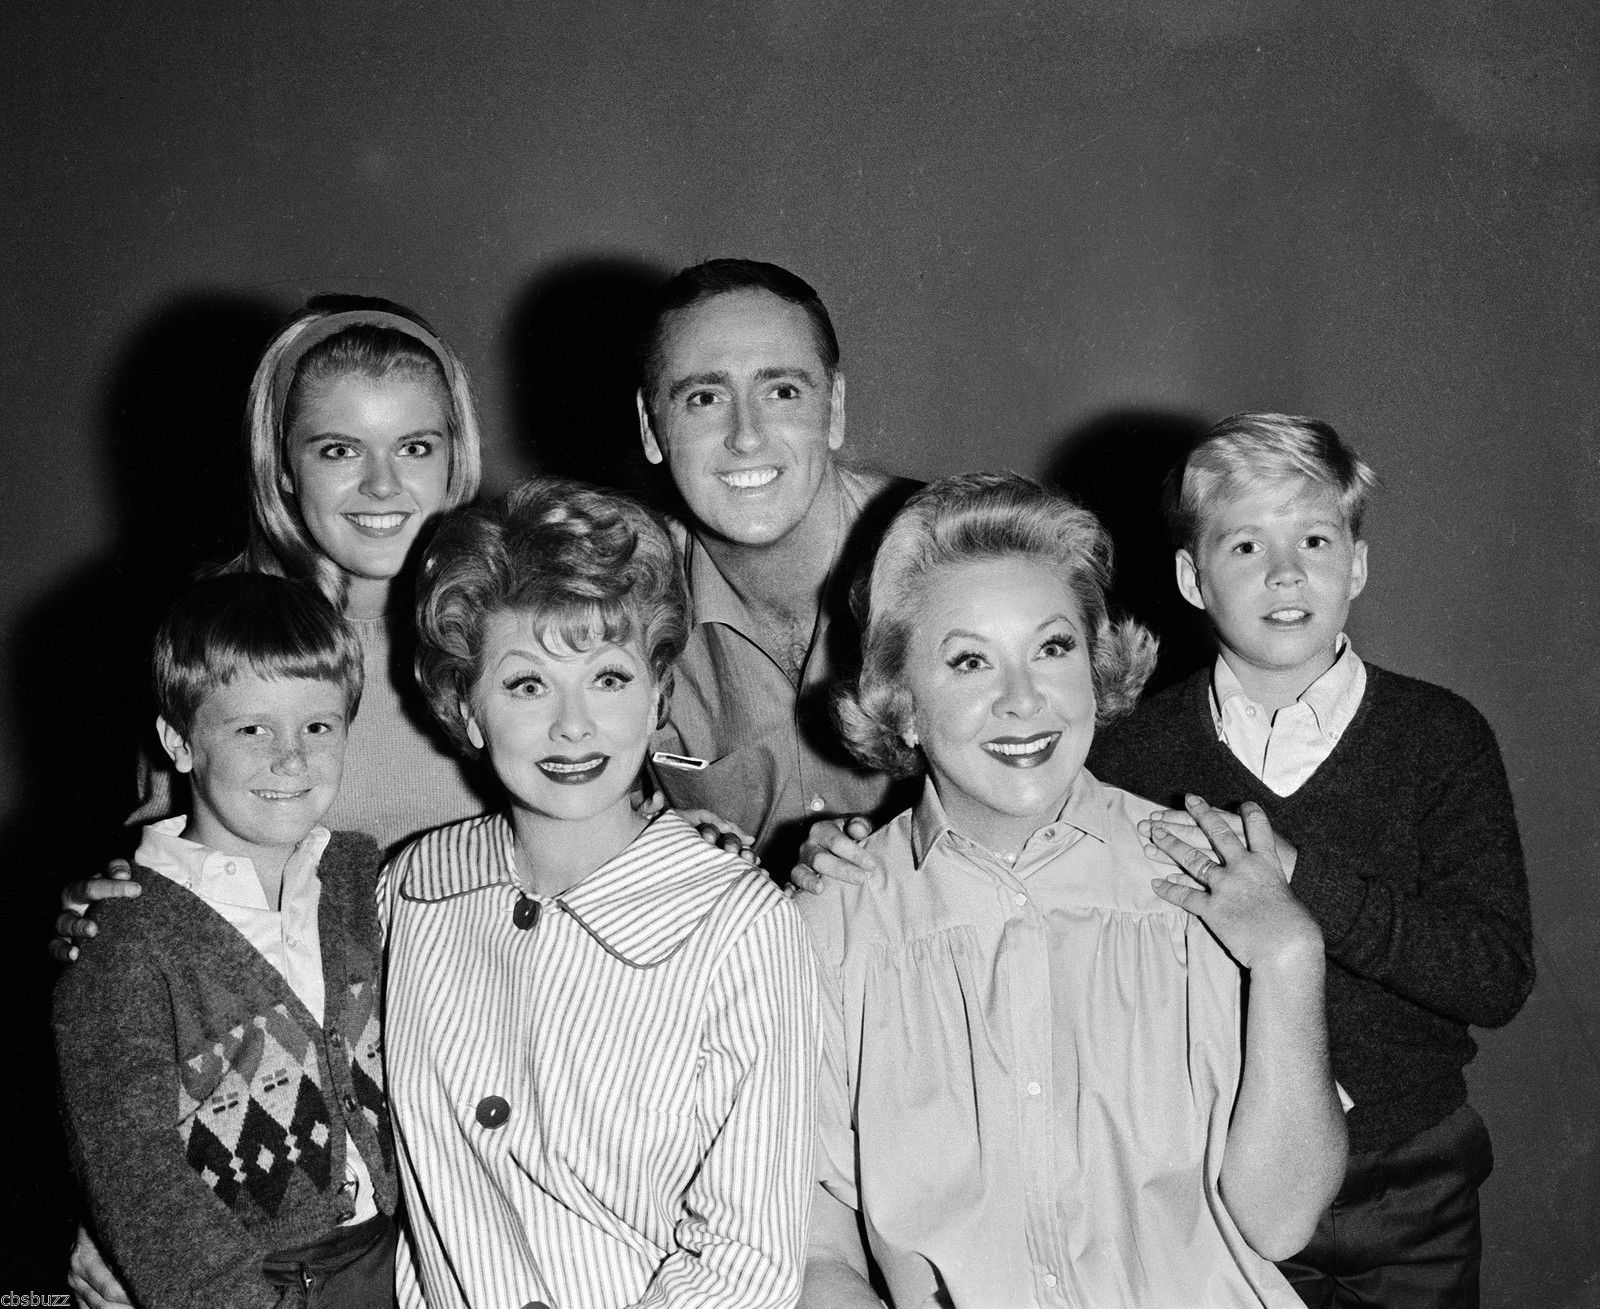 THE_LUCY_SHOW_-_TV_SHOW_PHOTO_13